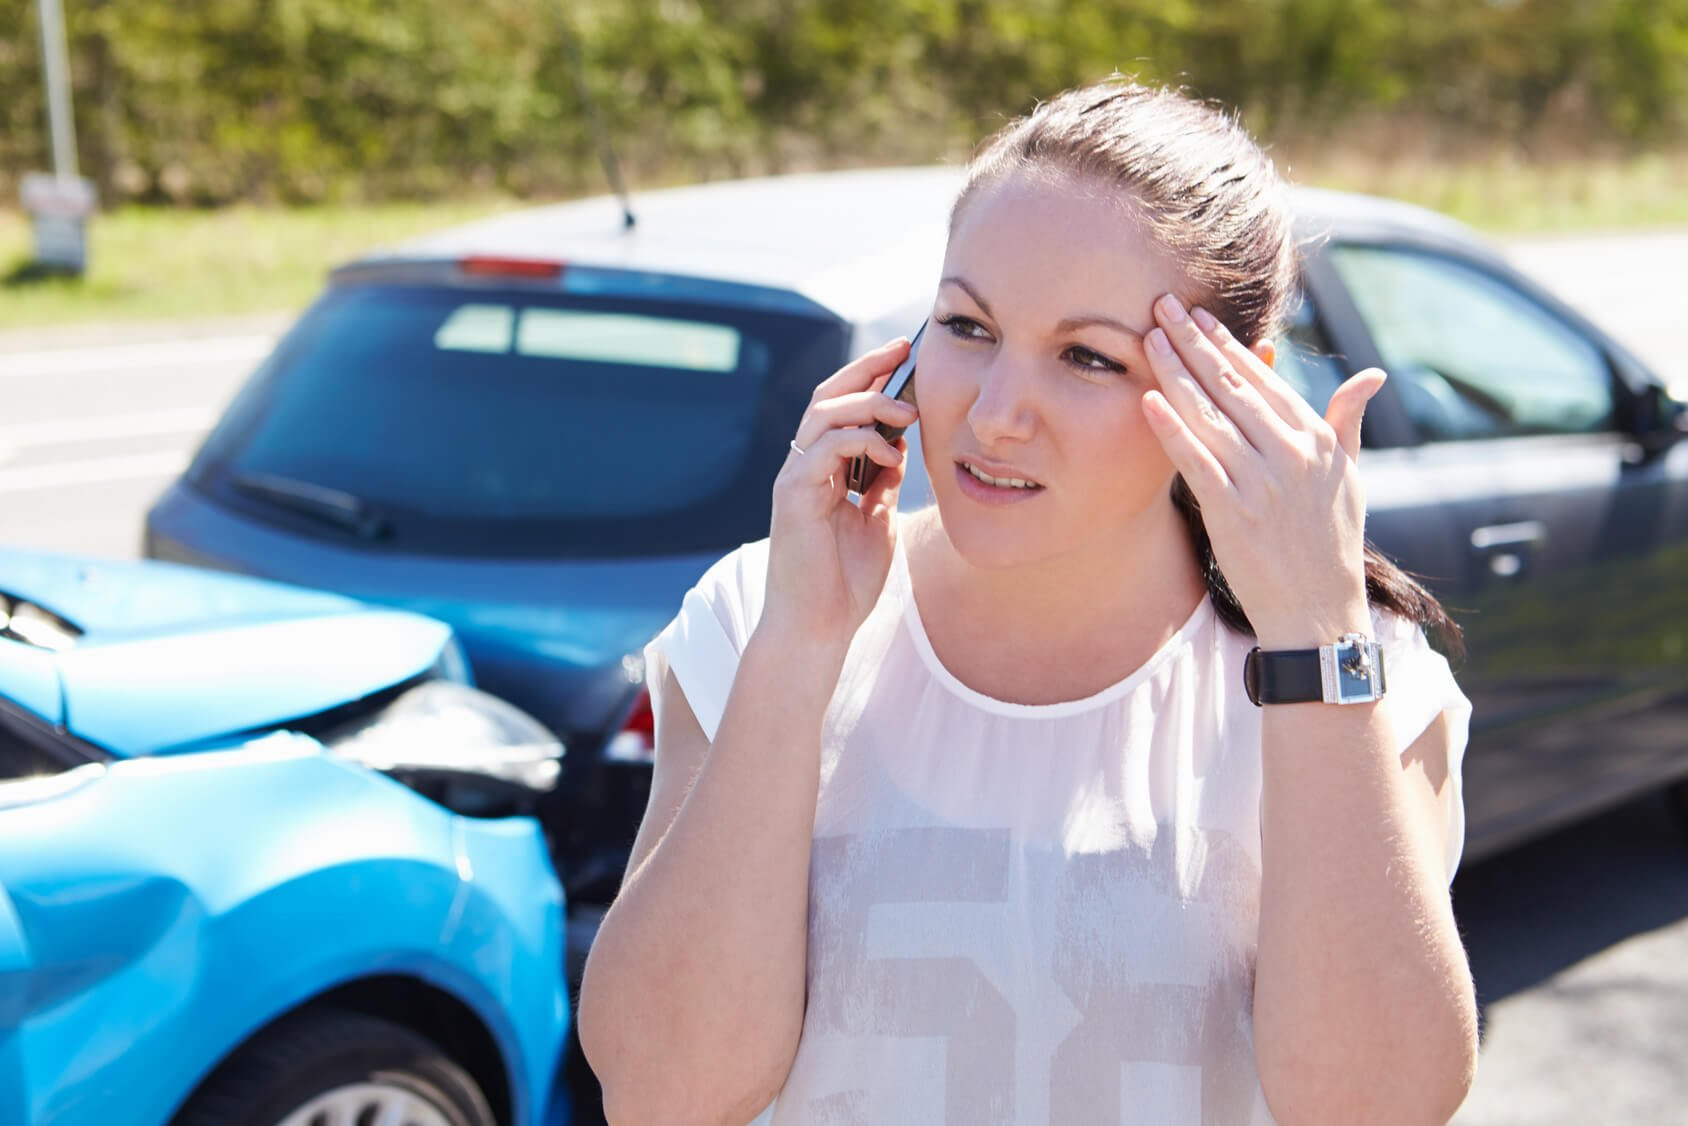 See Chiropractor after car accident